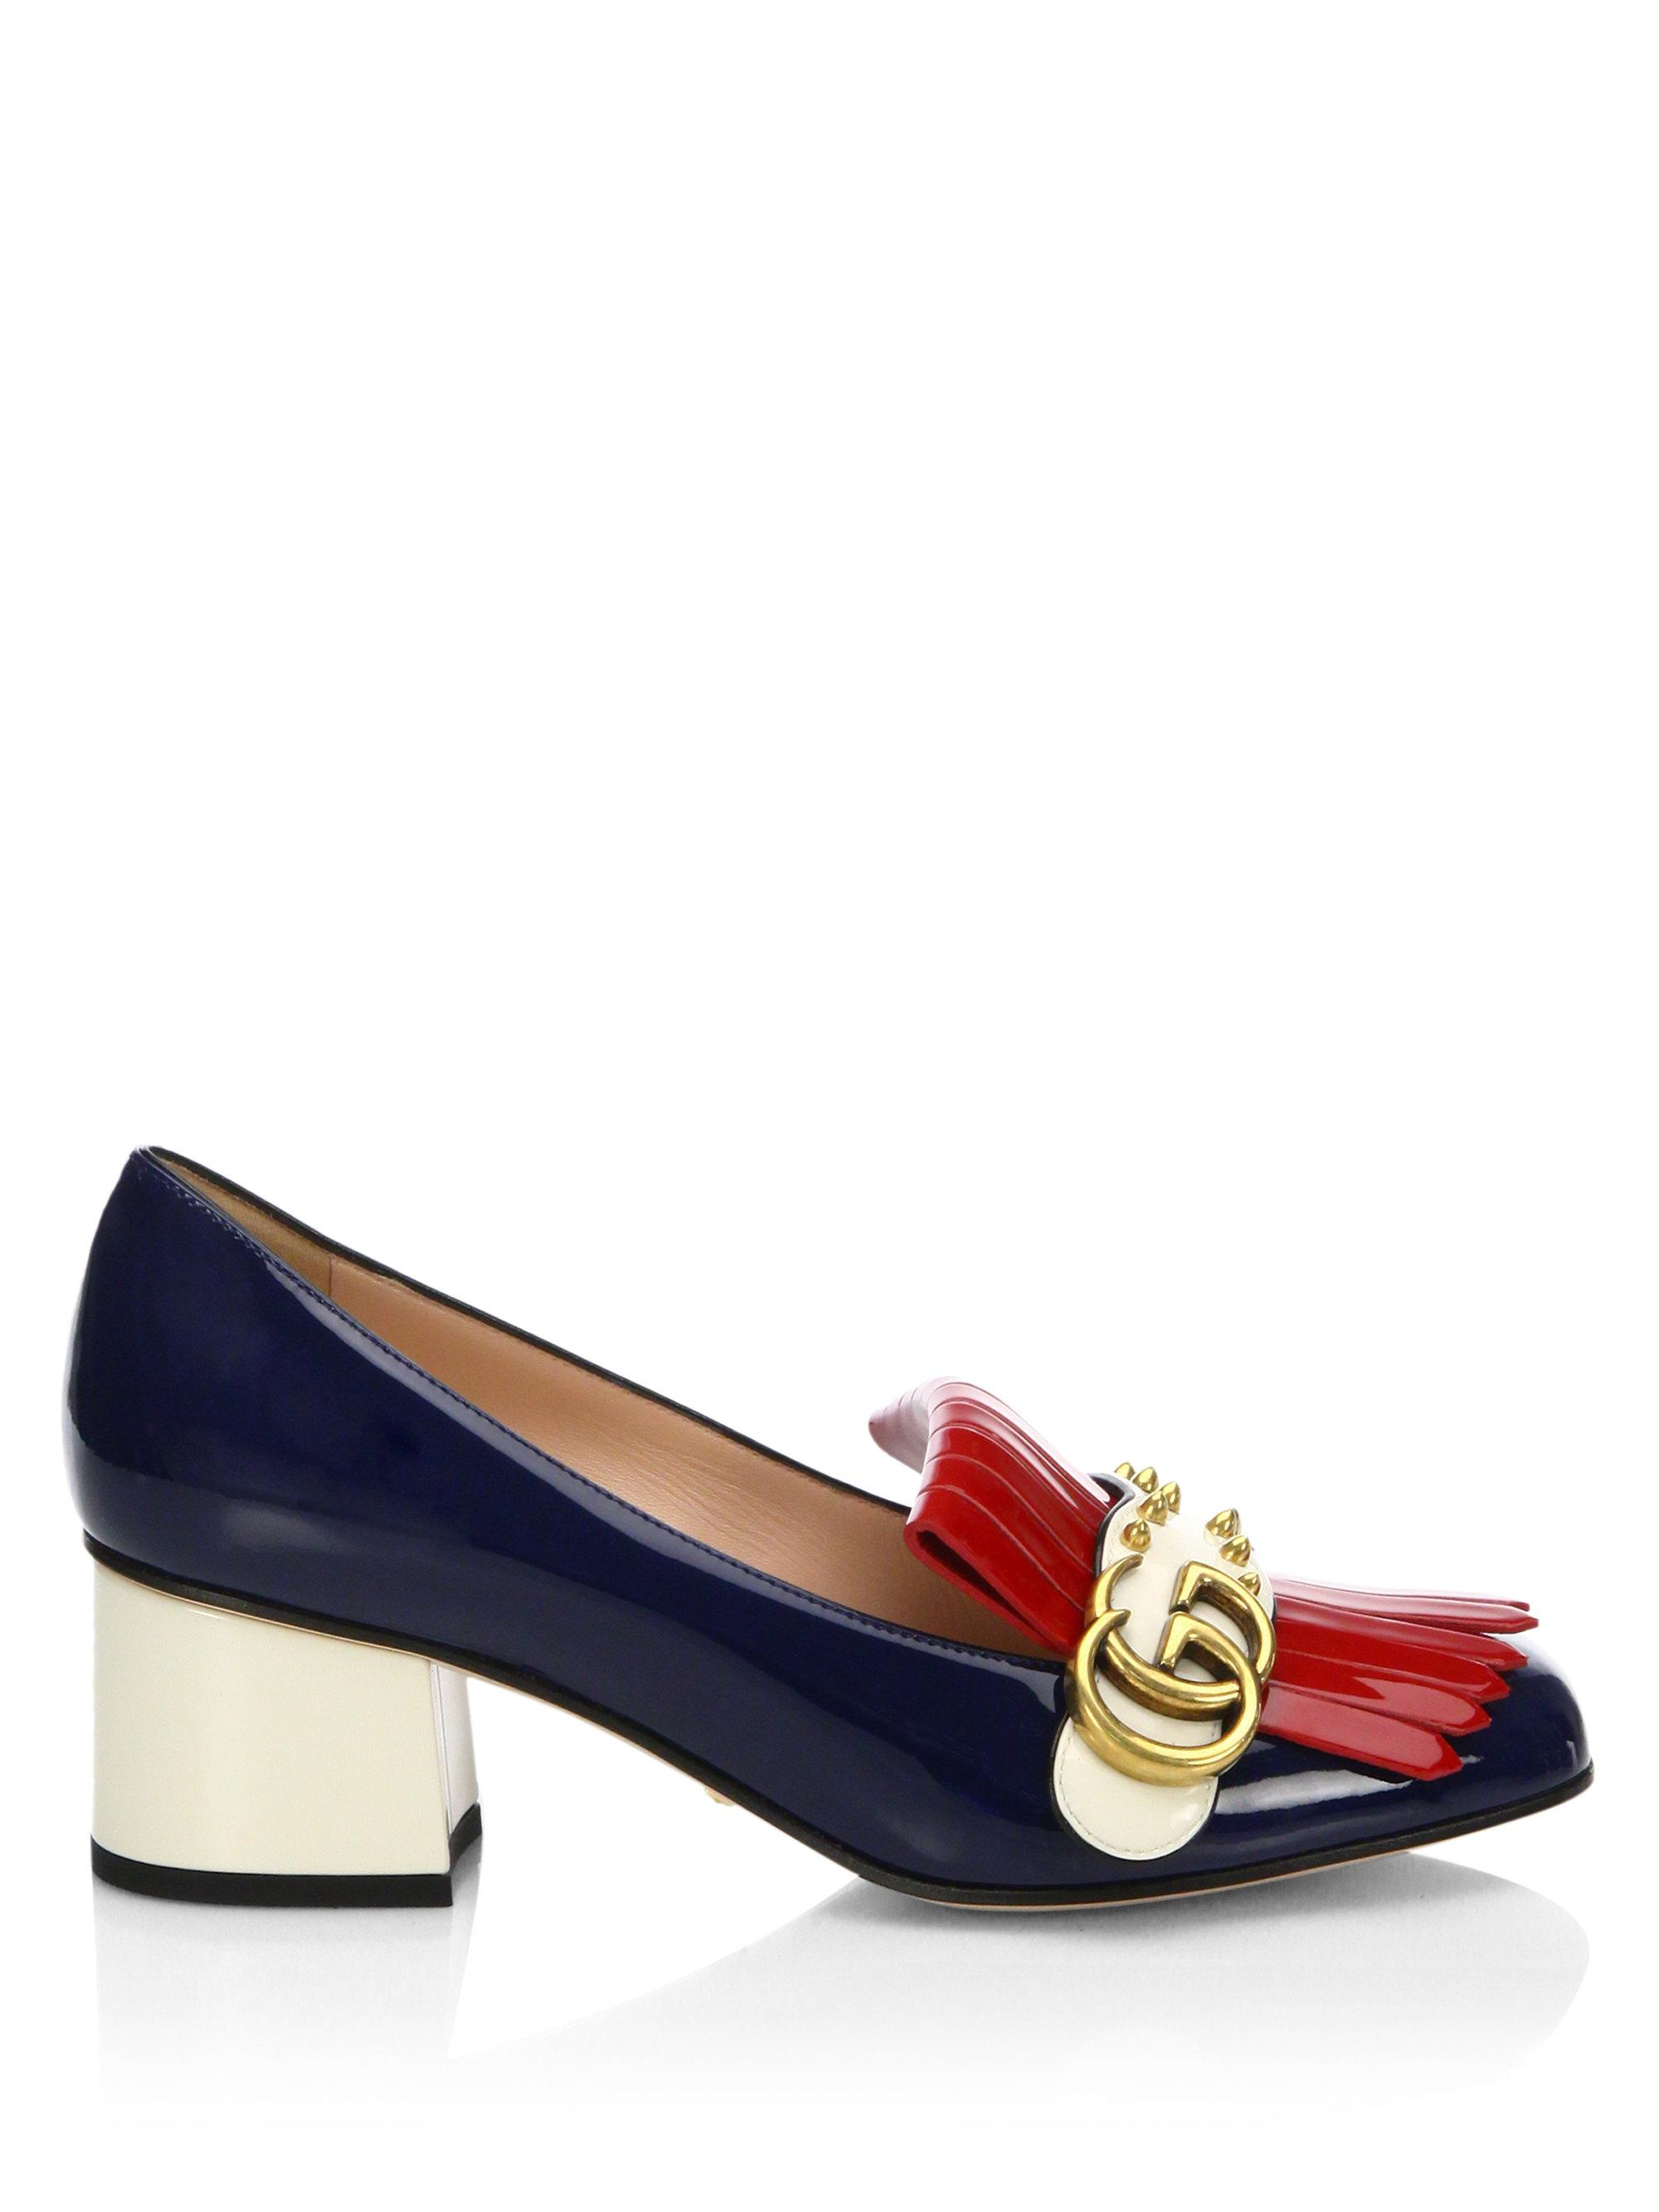 69303c20445 Gucci Marmont Gg Studded Tri-tone Patent Leather Loafer Pumps in ...